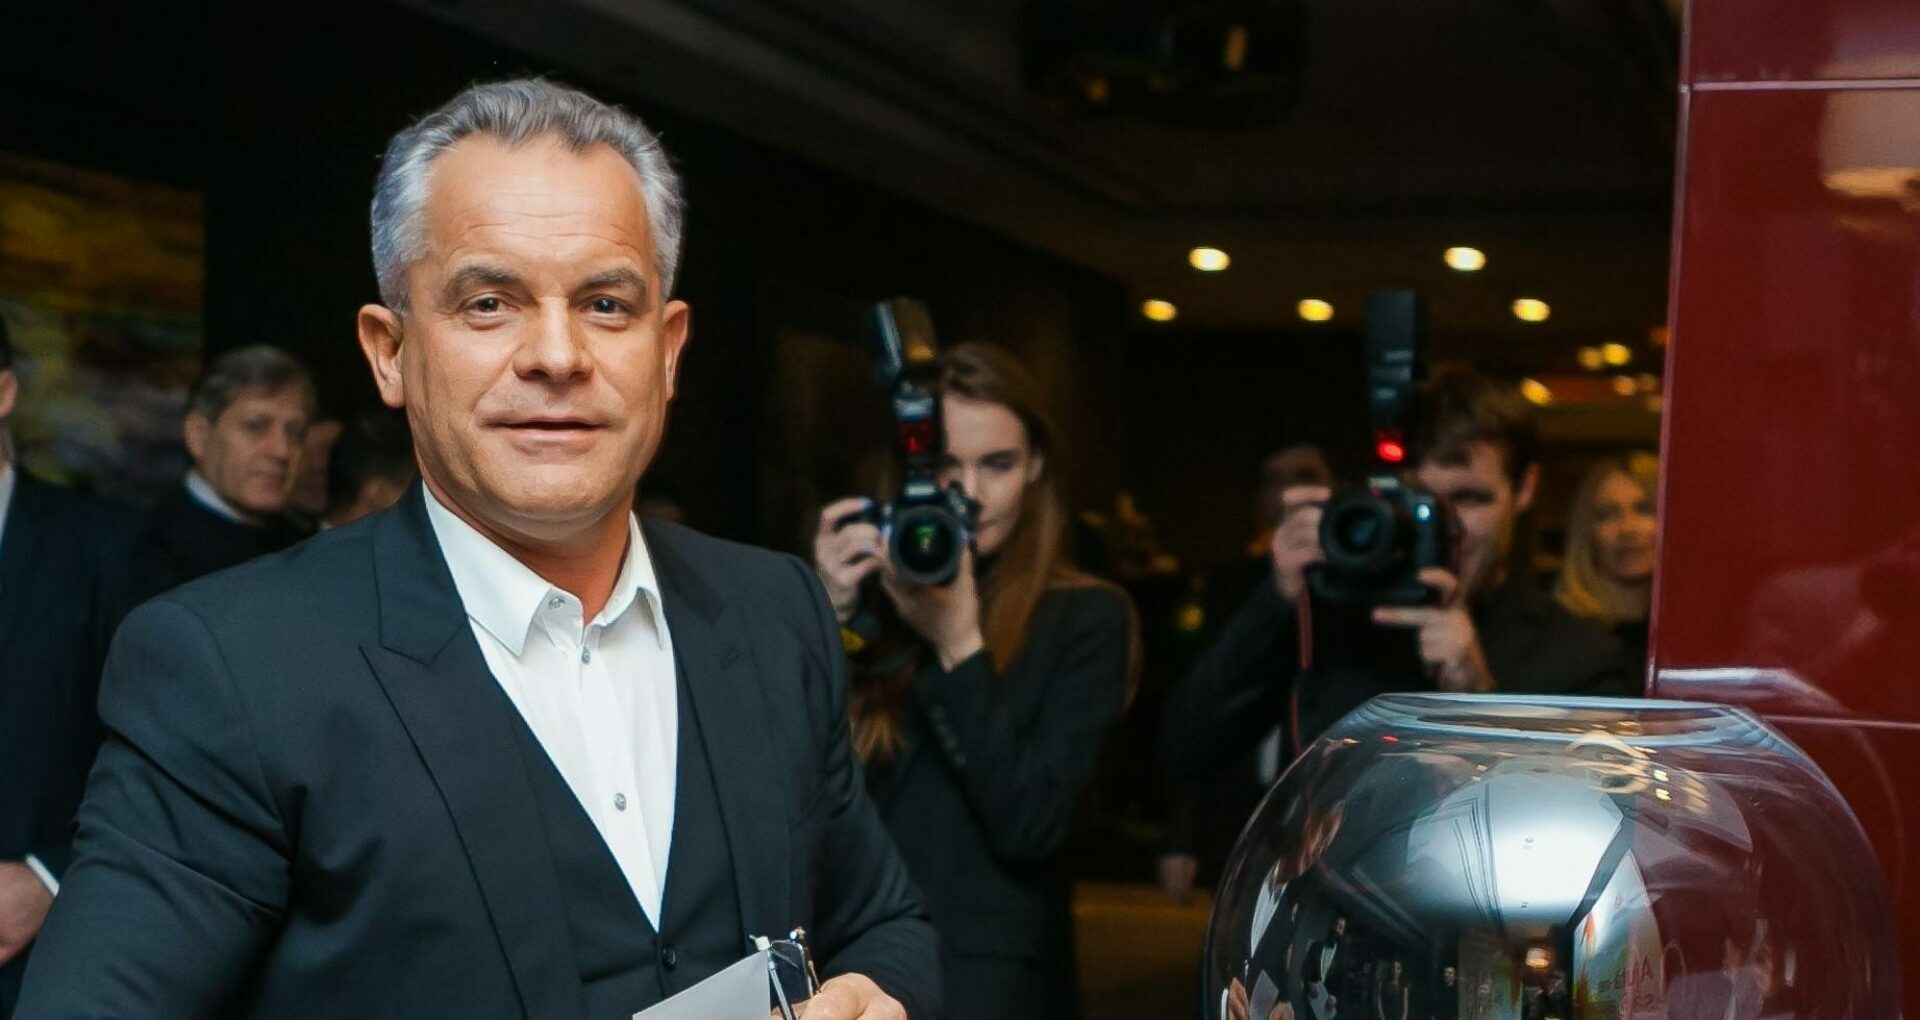 New Details in the Case of Vladimir Plahotniuc, the Country's Biggest Oligarch